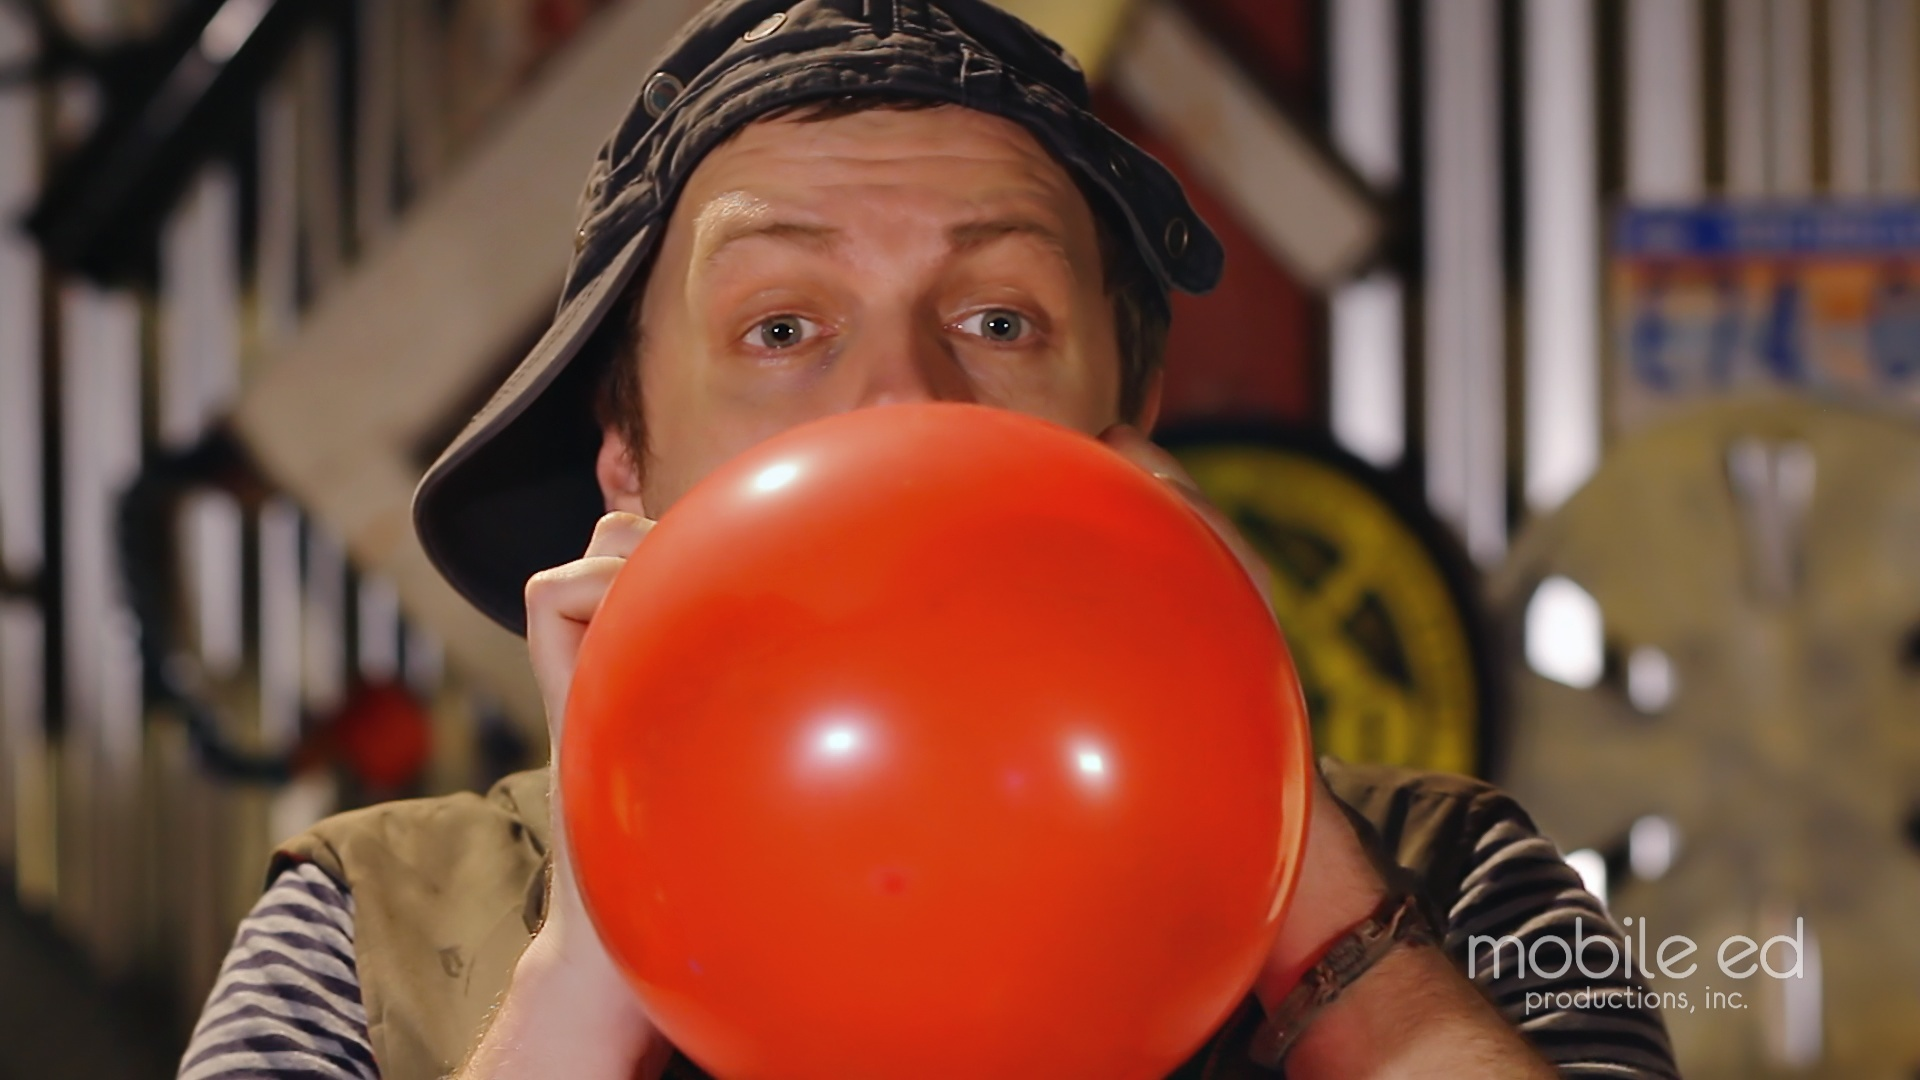 Make the Ball | Handy Dan the Junkyard Man | Mobile Ed Productions